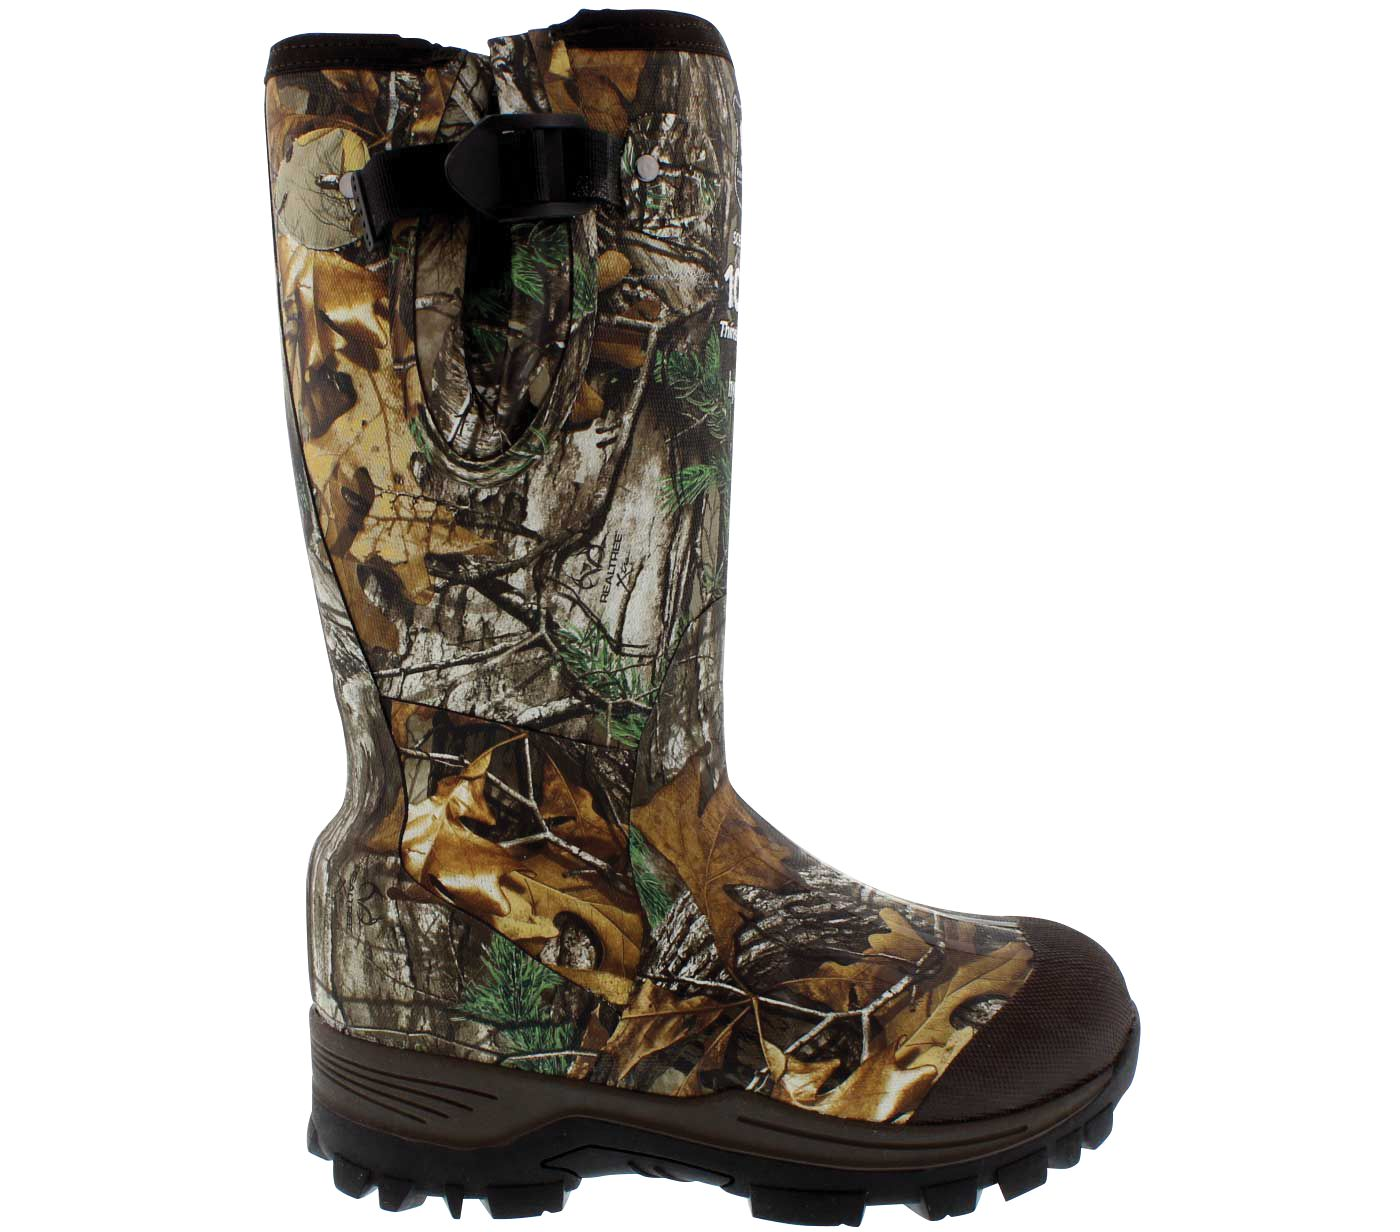 Field & Stream Women's Swamptracker 1000g Rubber Hunting Boots